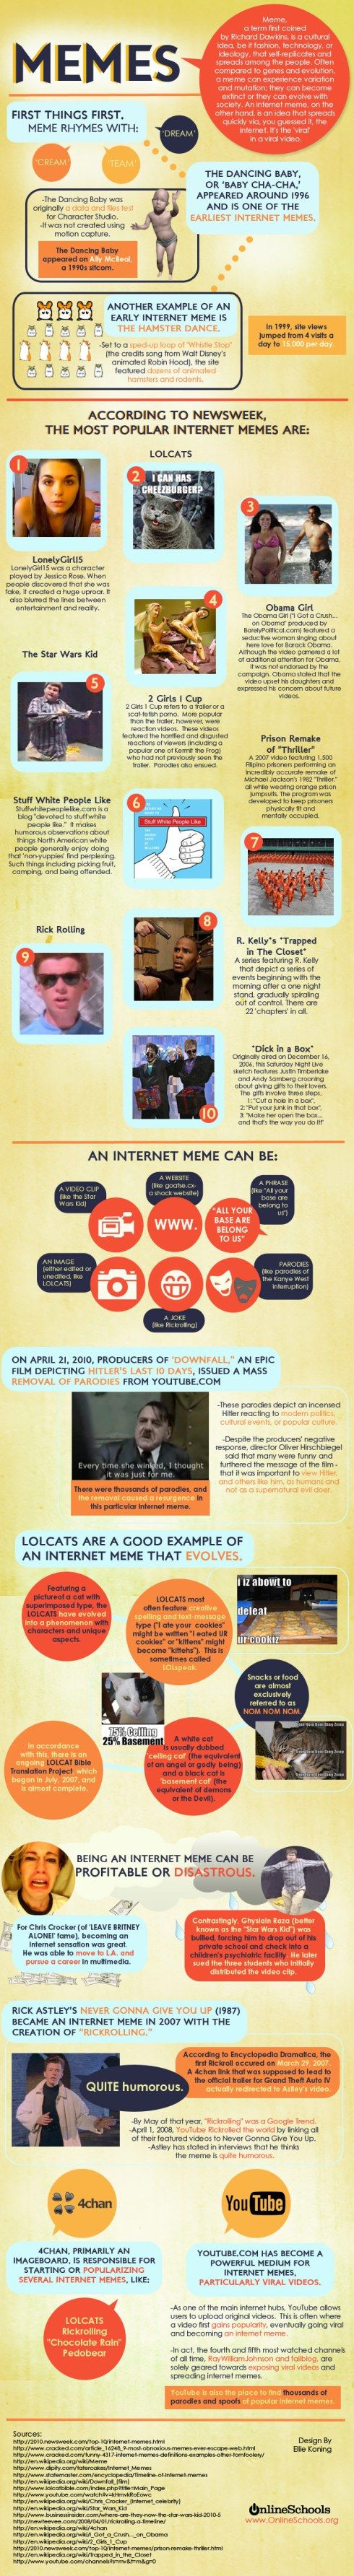 ... to the most famous Internet Memes – Infographic Monday | OnThatPage